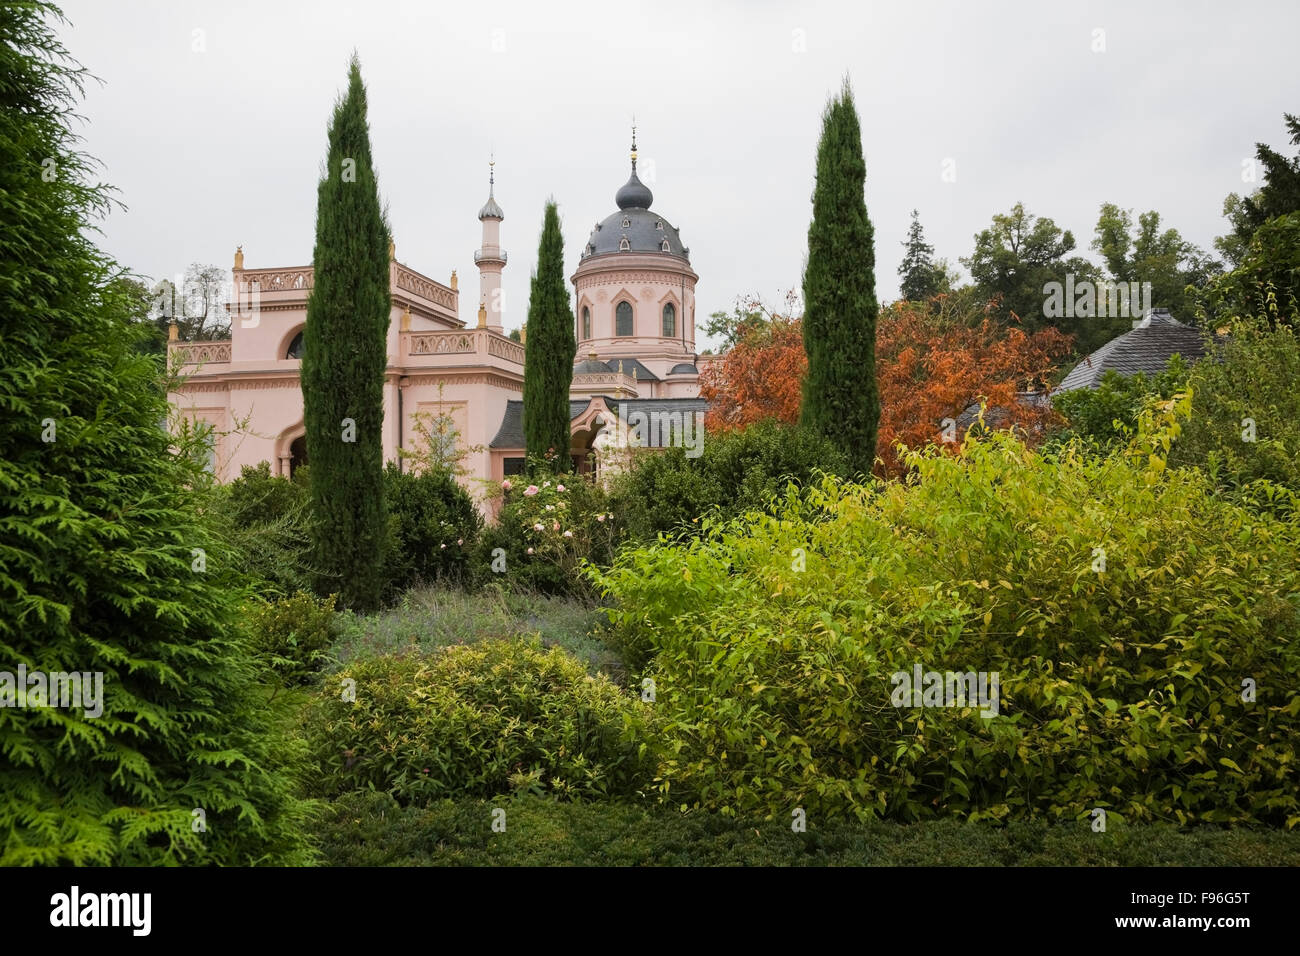 Rote Moschee Mosque in the Turkish garden on the grounds of the Schwetzingen palace garden in late summer, Schwetzingen, - Stock Image